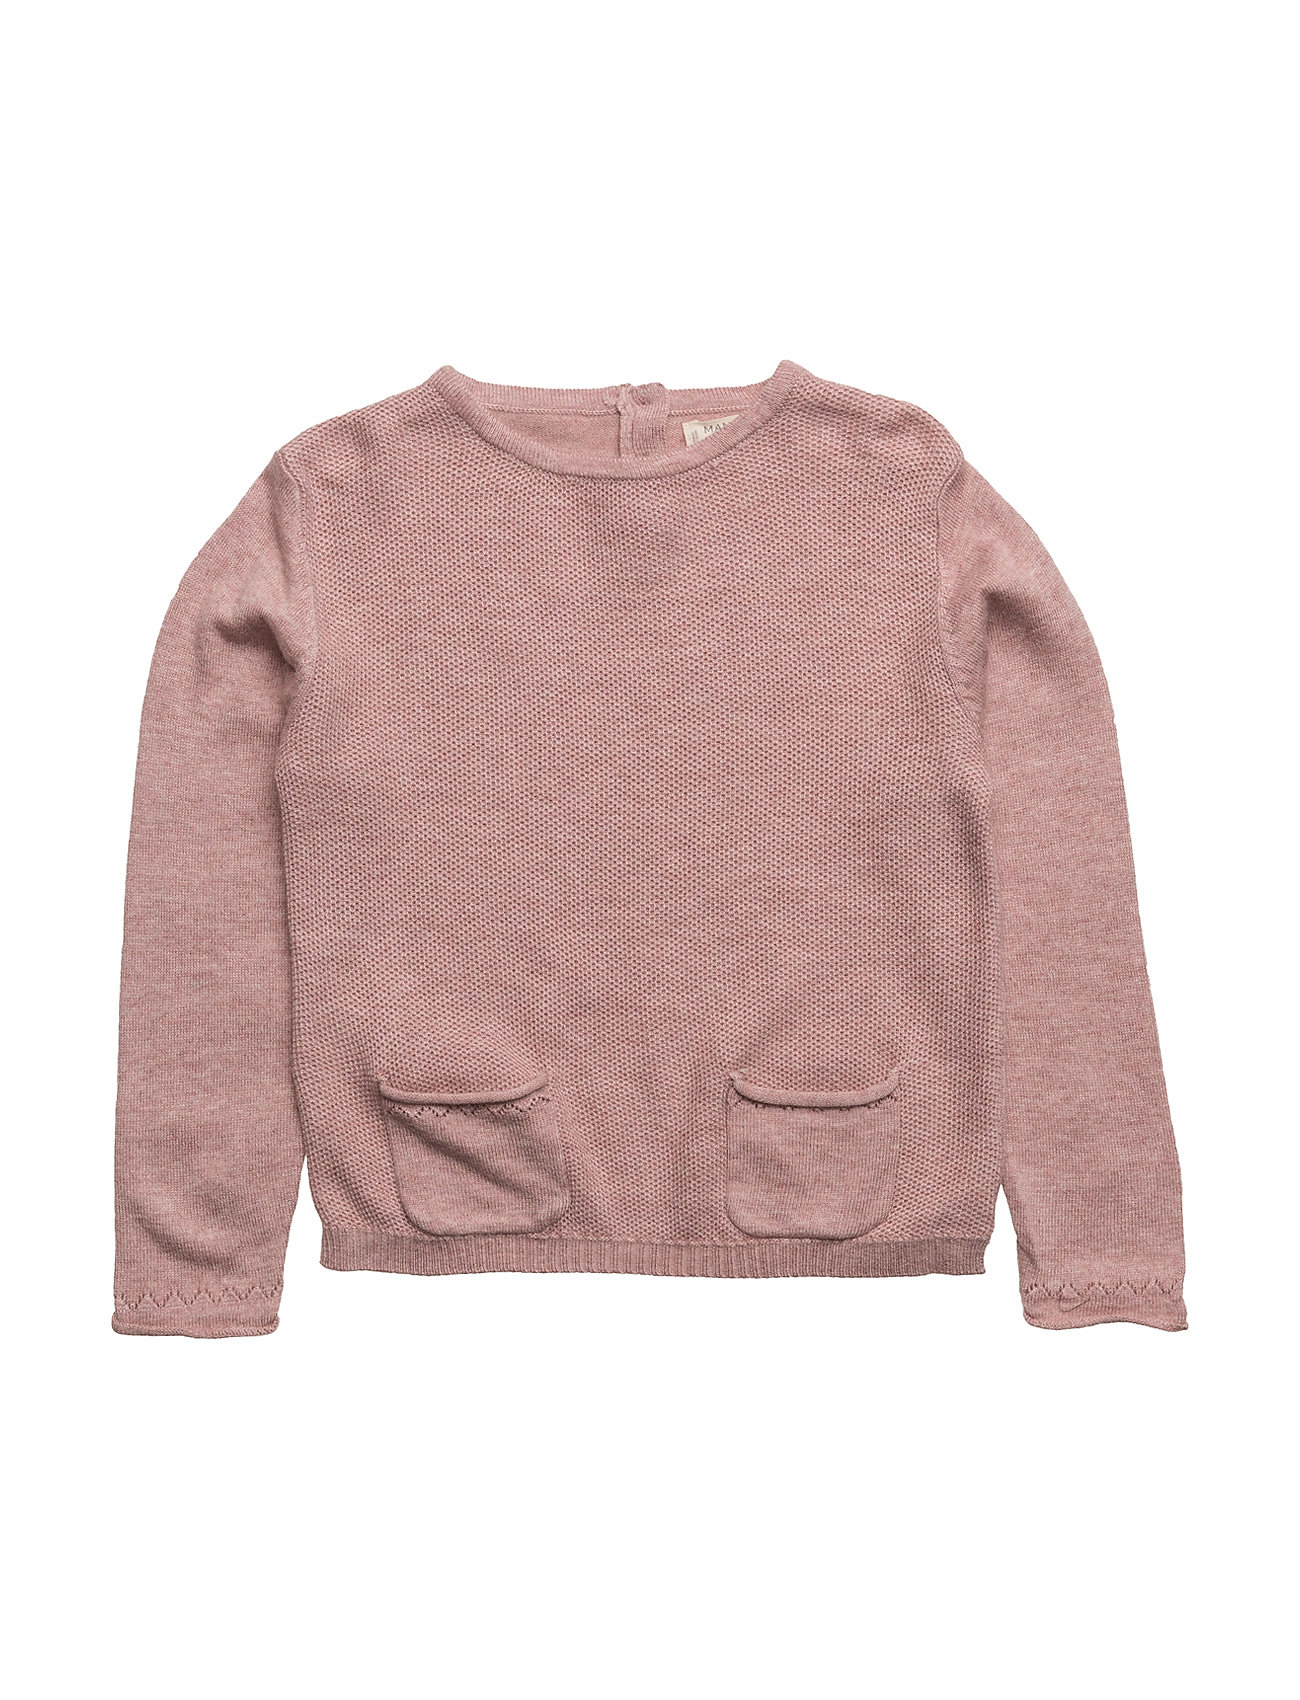 Image of Knit Pockets Sweater (2743061083)